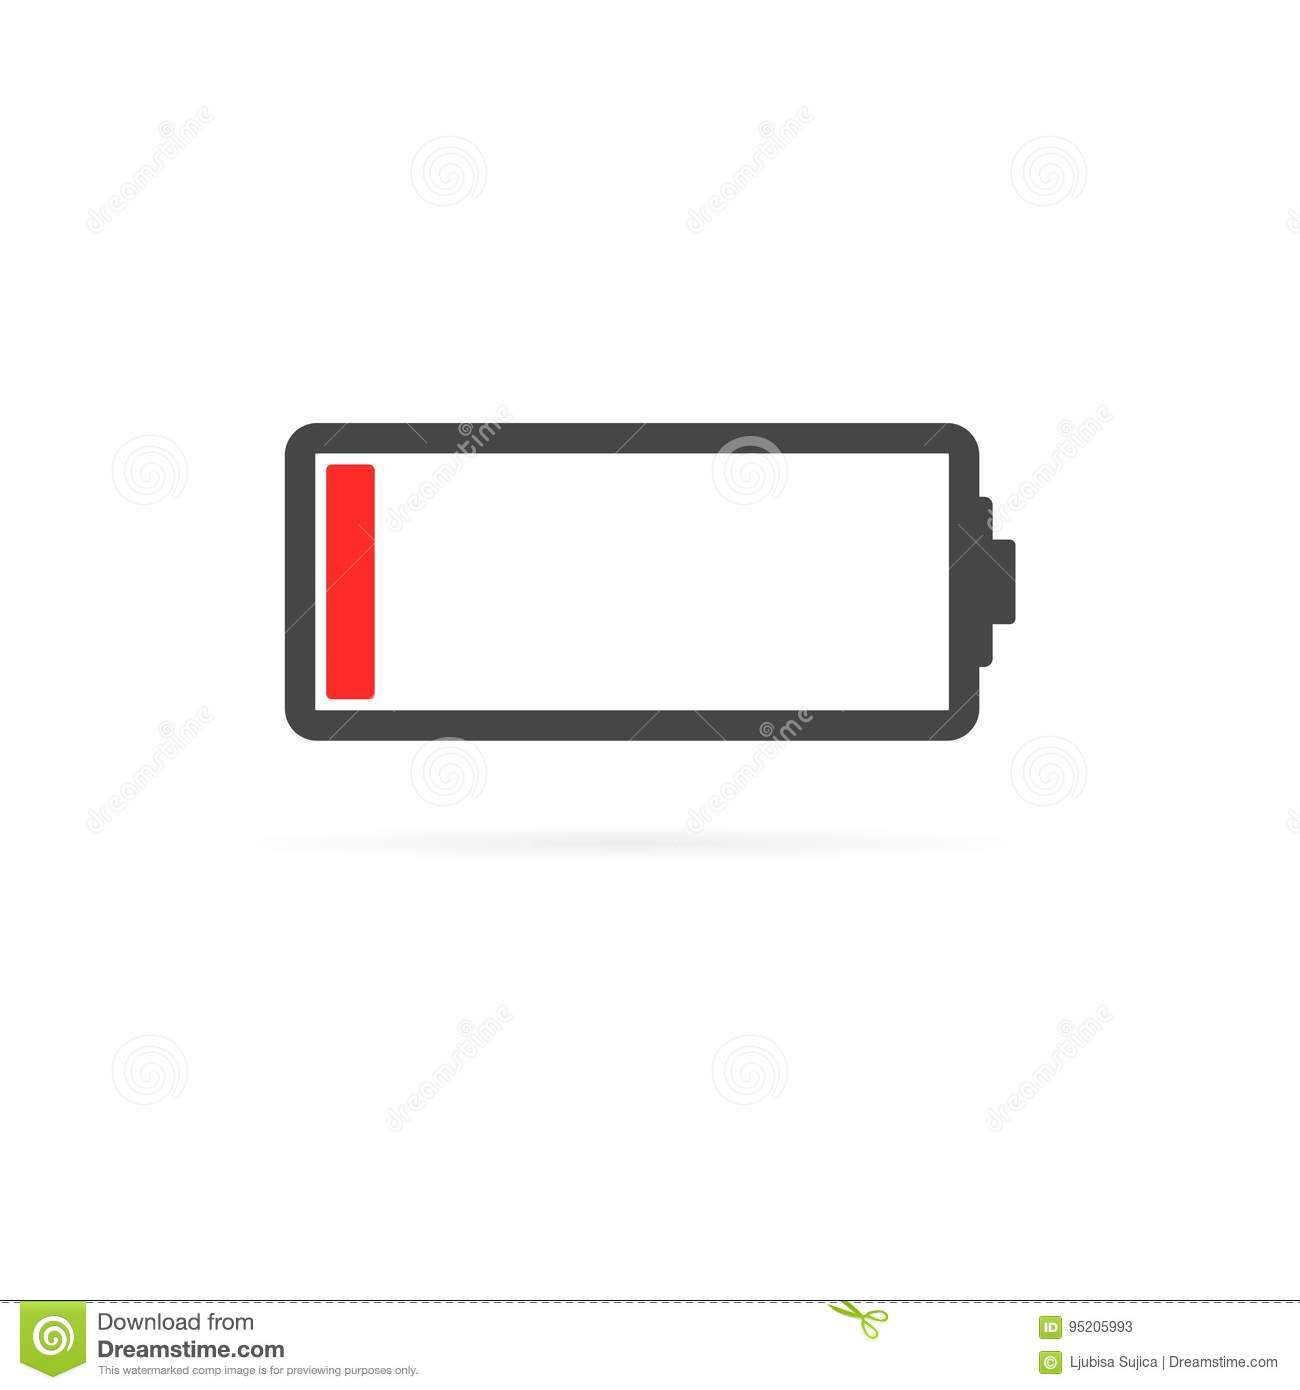 Battery low icon stock vector. Illustration of dimensional ...